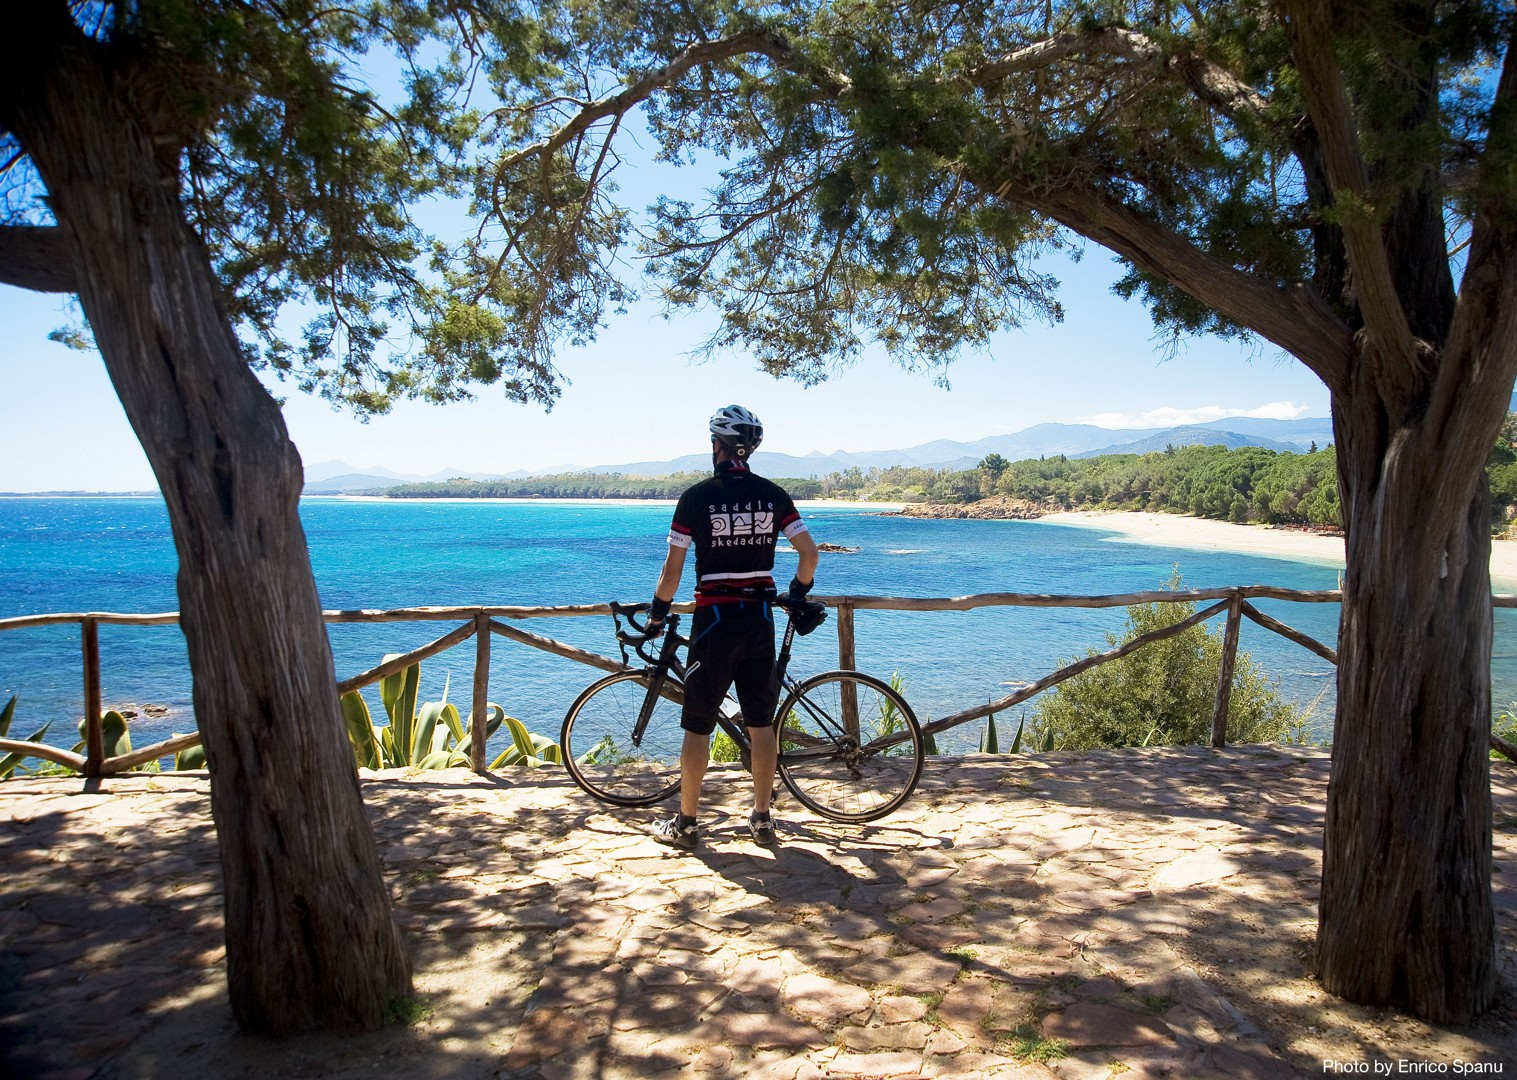 Guided-Road-Cycling-Holiday-Sardinia-Sardinian-Mountains-Forests-and-beautiful-countryside.jpg - Italy - Sardinia - Mountain Explorer - Guided Road Cycling Holiday - Italia Road Cycling